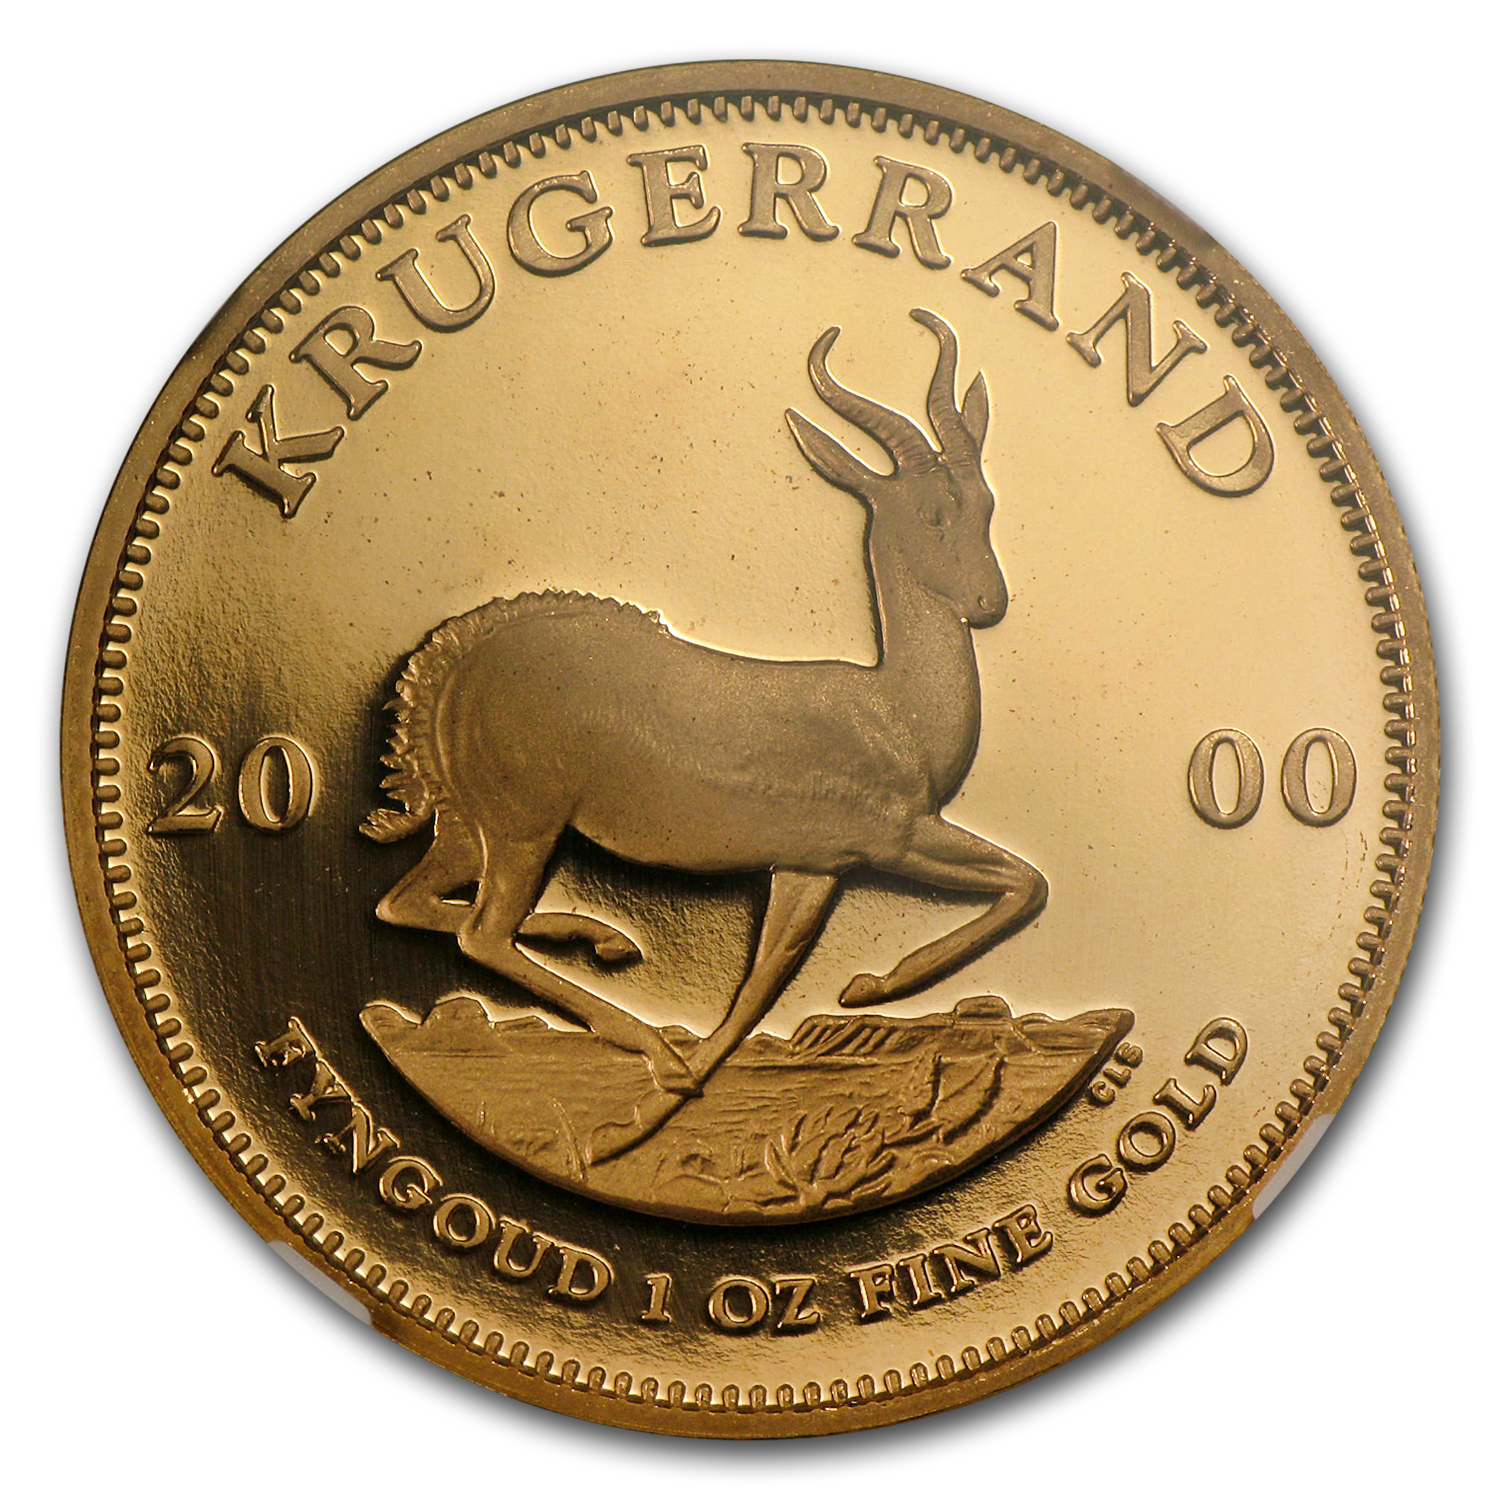 2000 1 oz Gold South African Krugerrand PF-69 NGC